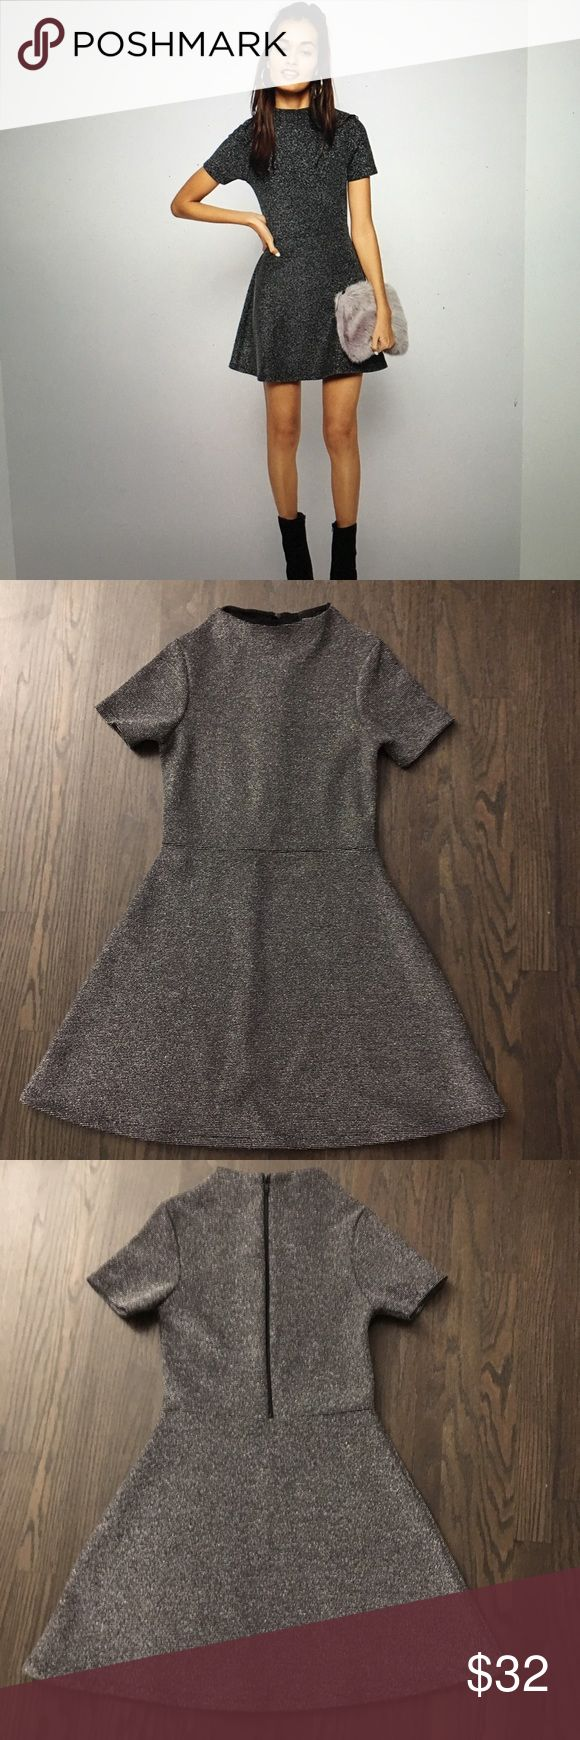 """ASOS silver BLK dress US2 NWOT ASOS a line dress in bonded silver; high neck US2. This is not a petite line dress 33""""L; 14.5 armpit to armpit. Lined please ask questions. No trades or returns ASOS Dresses"""